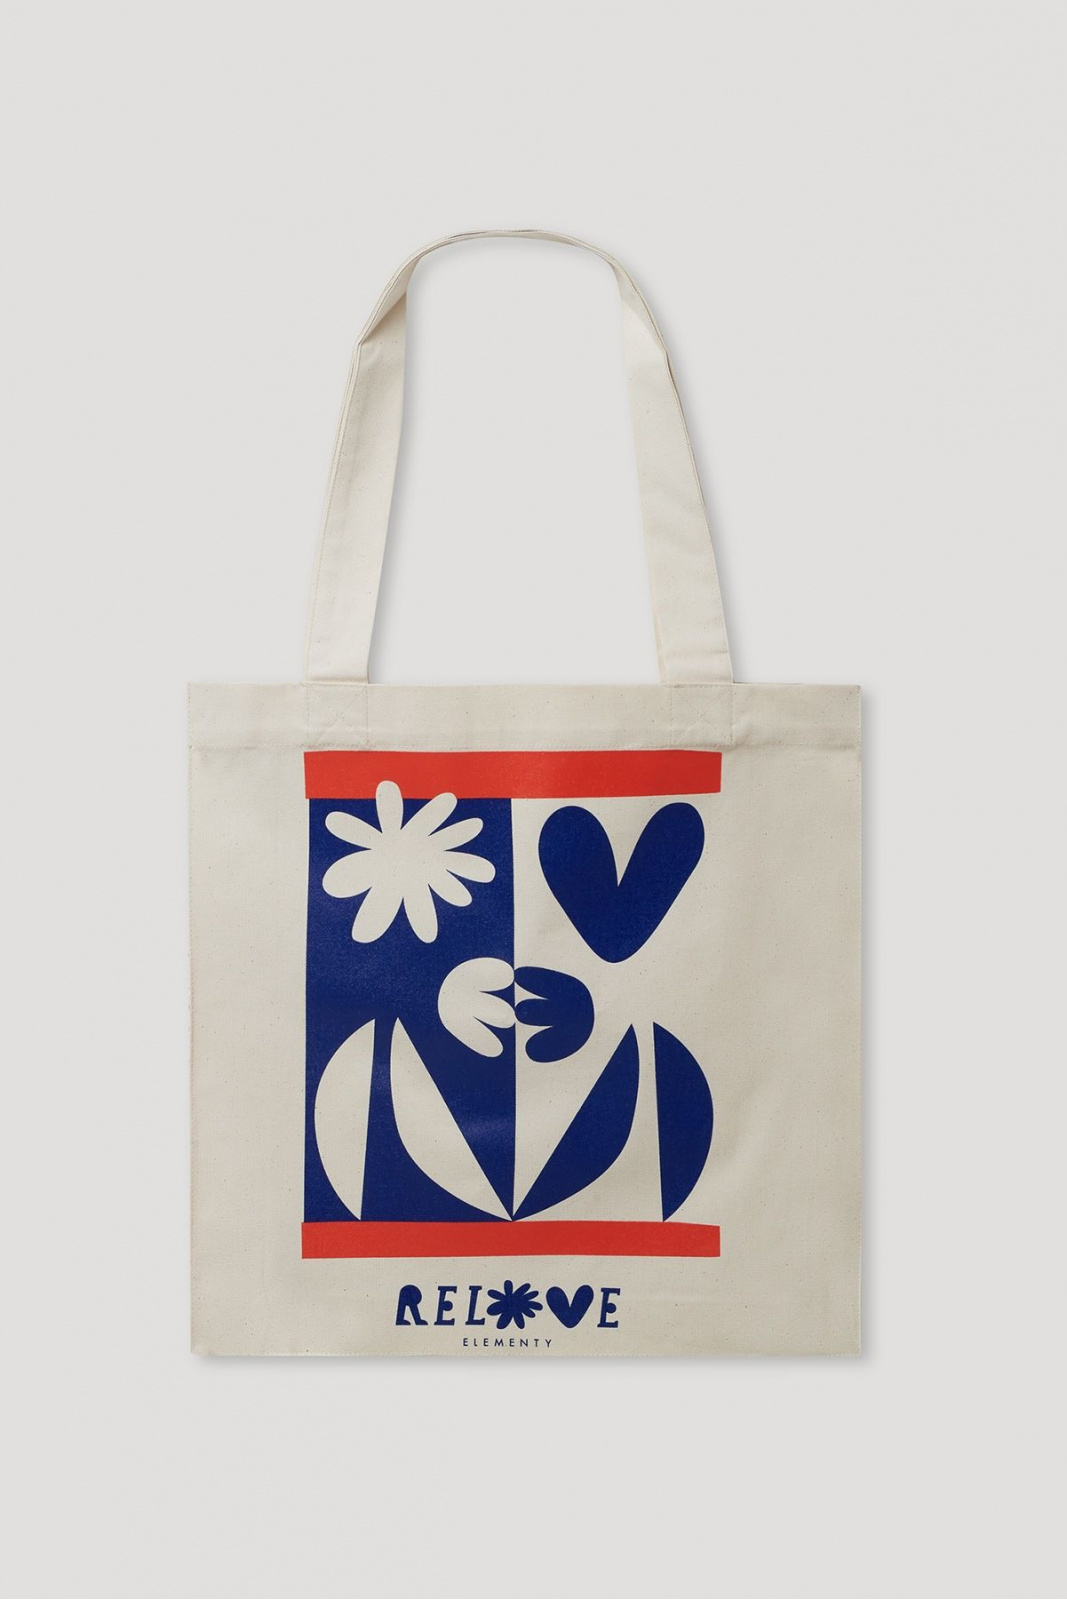 Relove Tote Bag Relove Expand Elementy